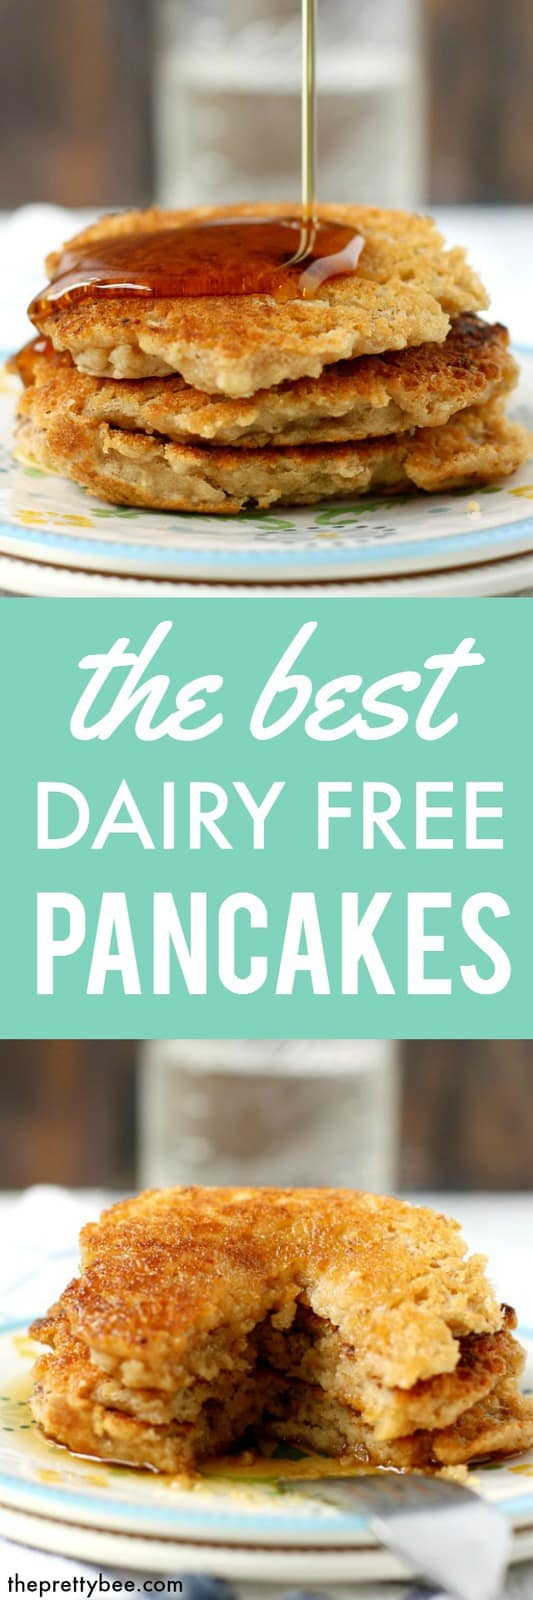 Light and fluffy pancakes made without dairy or eggs! These are perfect for a weekend breakfast!